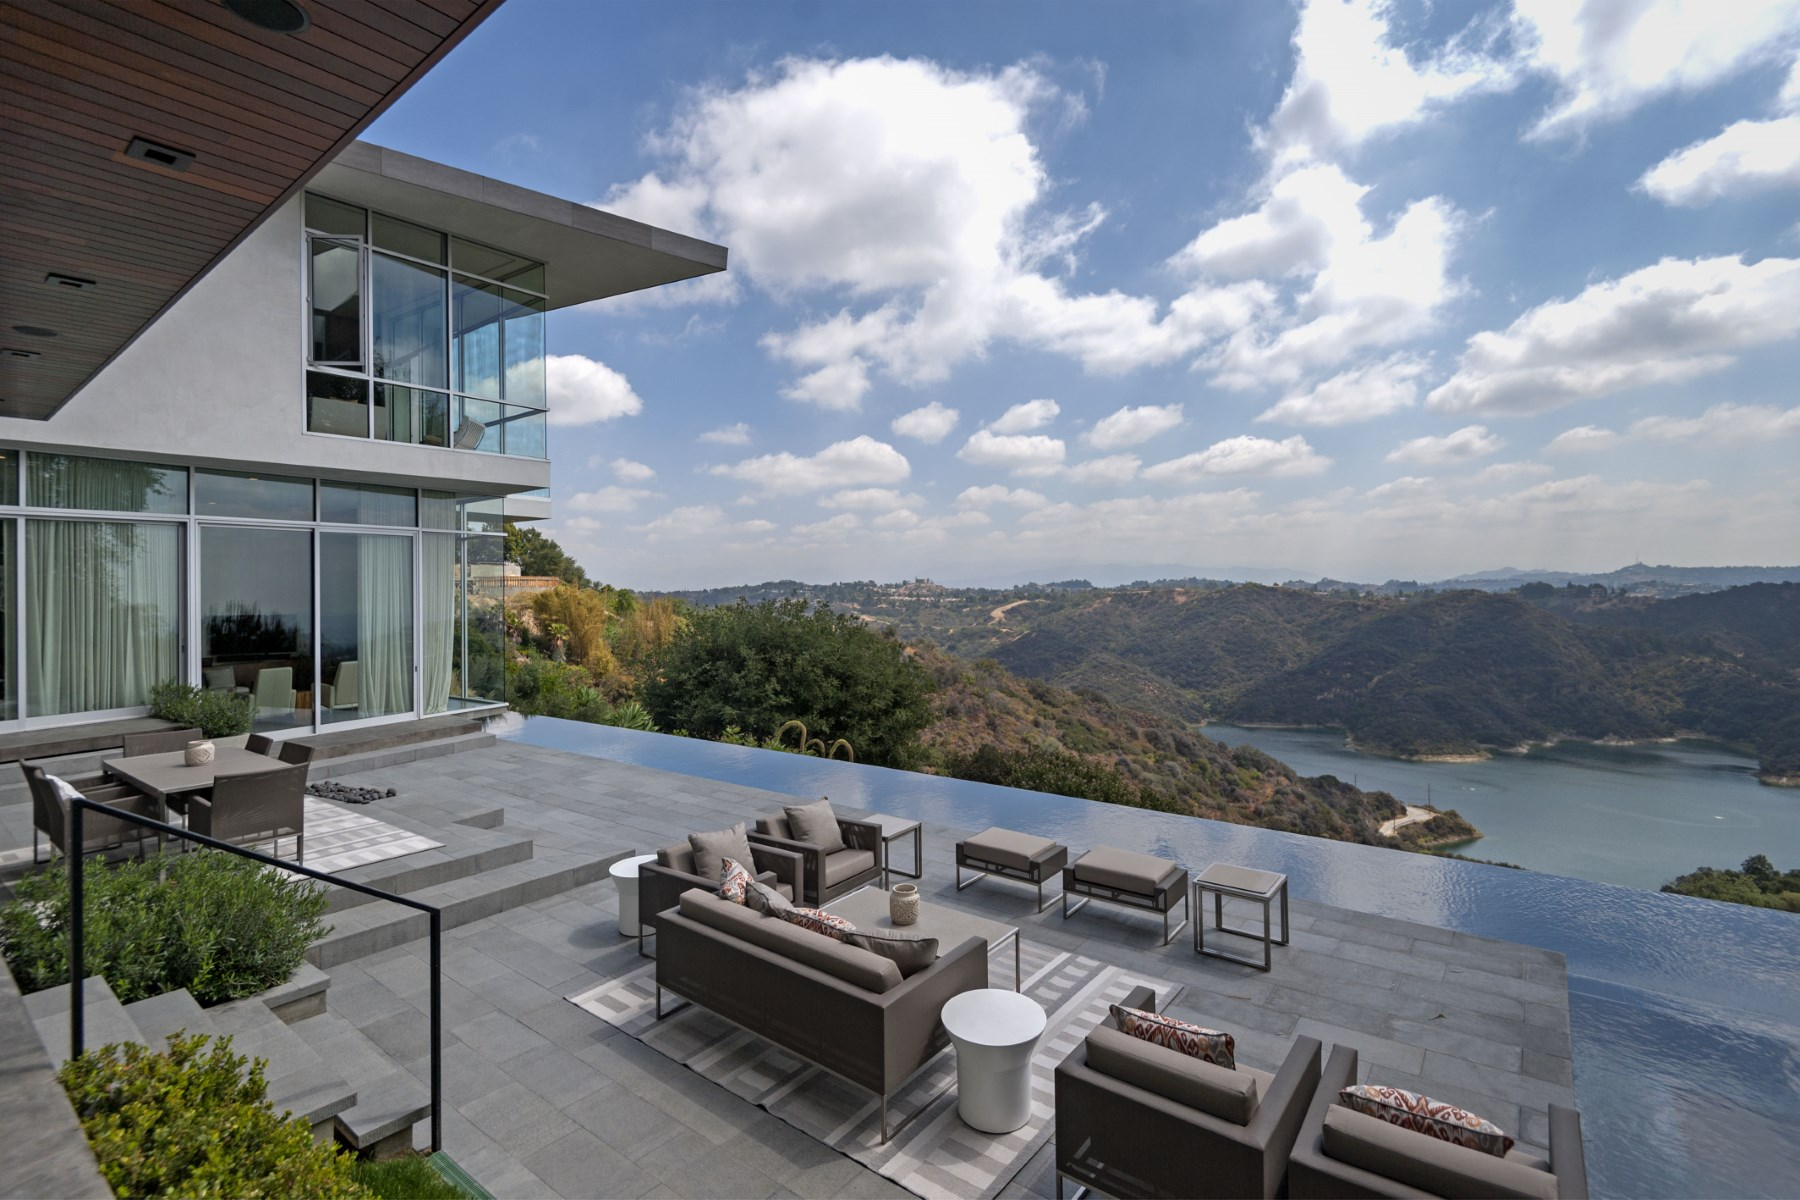 단독 가정 주택 용 매매 에 Striking Architectural Spectacular Views 2170 Stradella Road Bel Air, Los Angeles, 캘리포니아 90077 미국